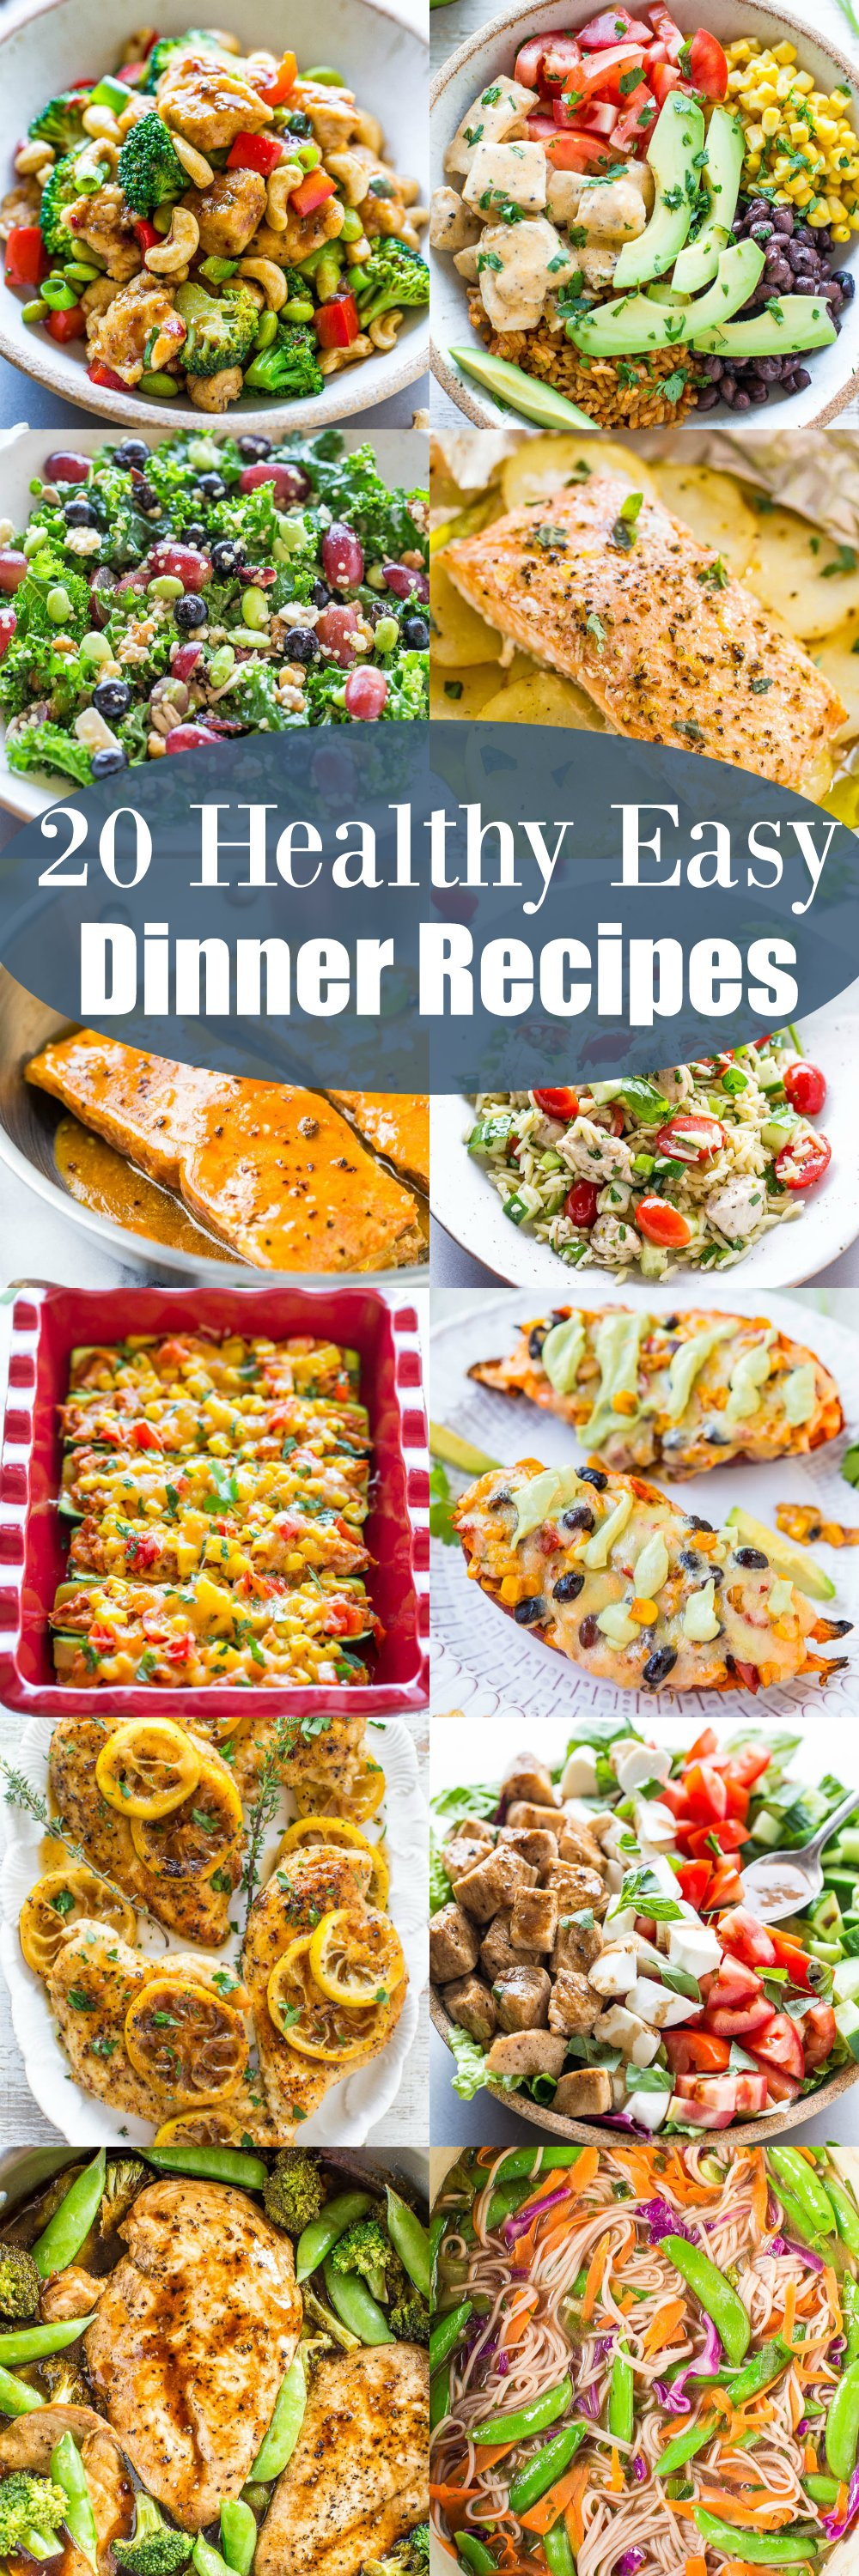 20 healthy easy dinner recipes averie cooks 20 healthy easy dinner recipes looking for healthy easy recipes that taste great and forumfinder Gallery